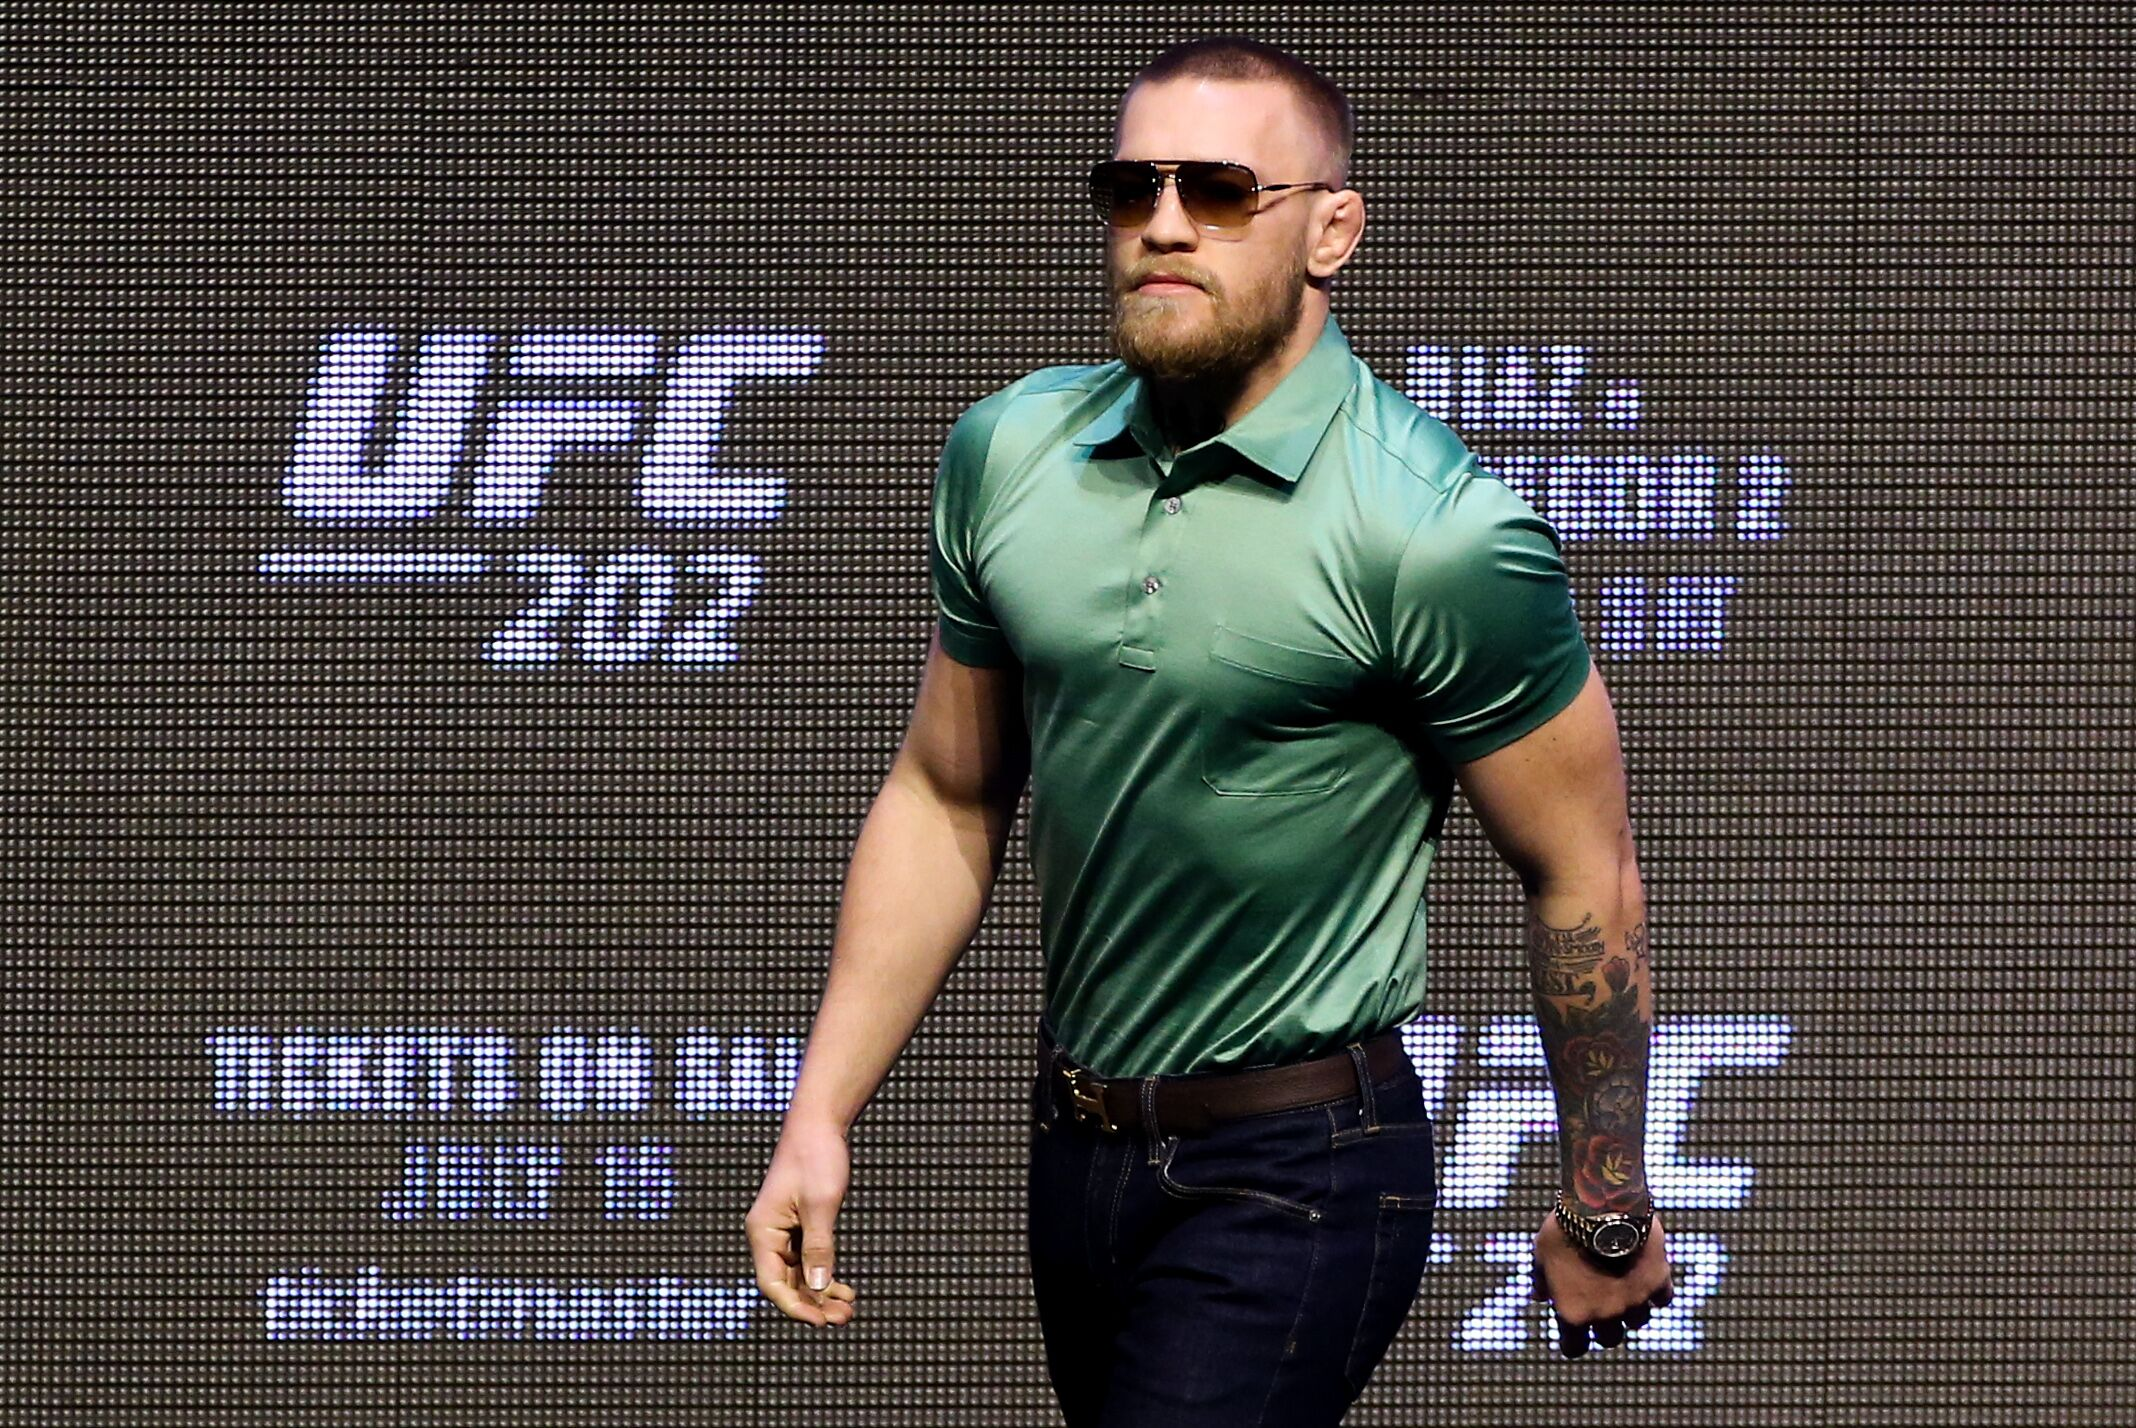 Someone who sounds exactly like Conor McGregor played Overwatch